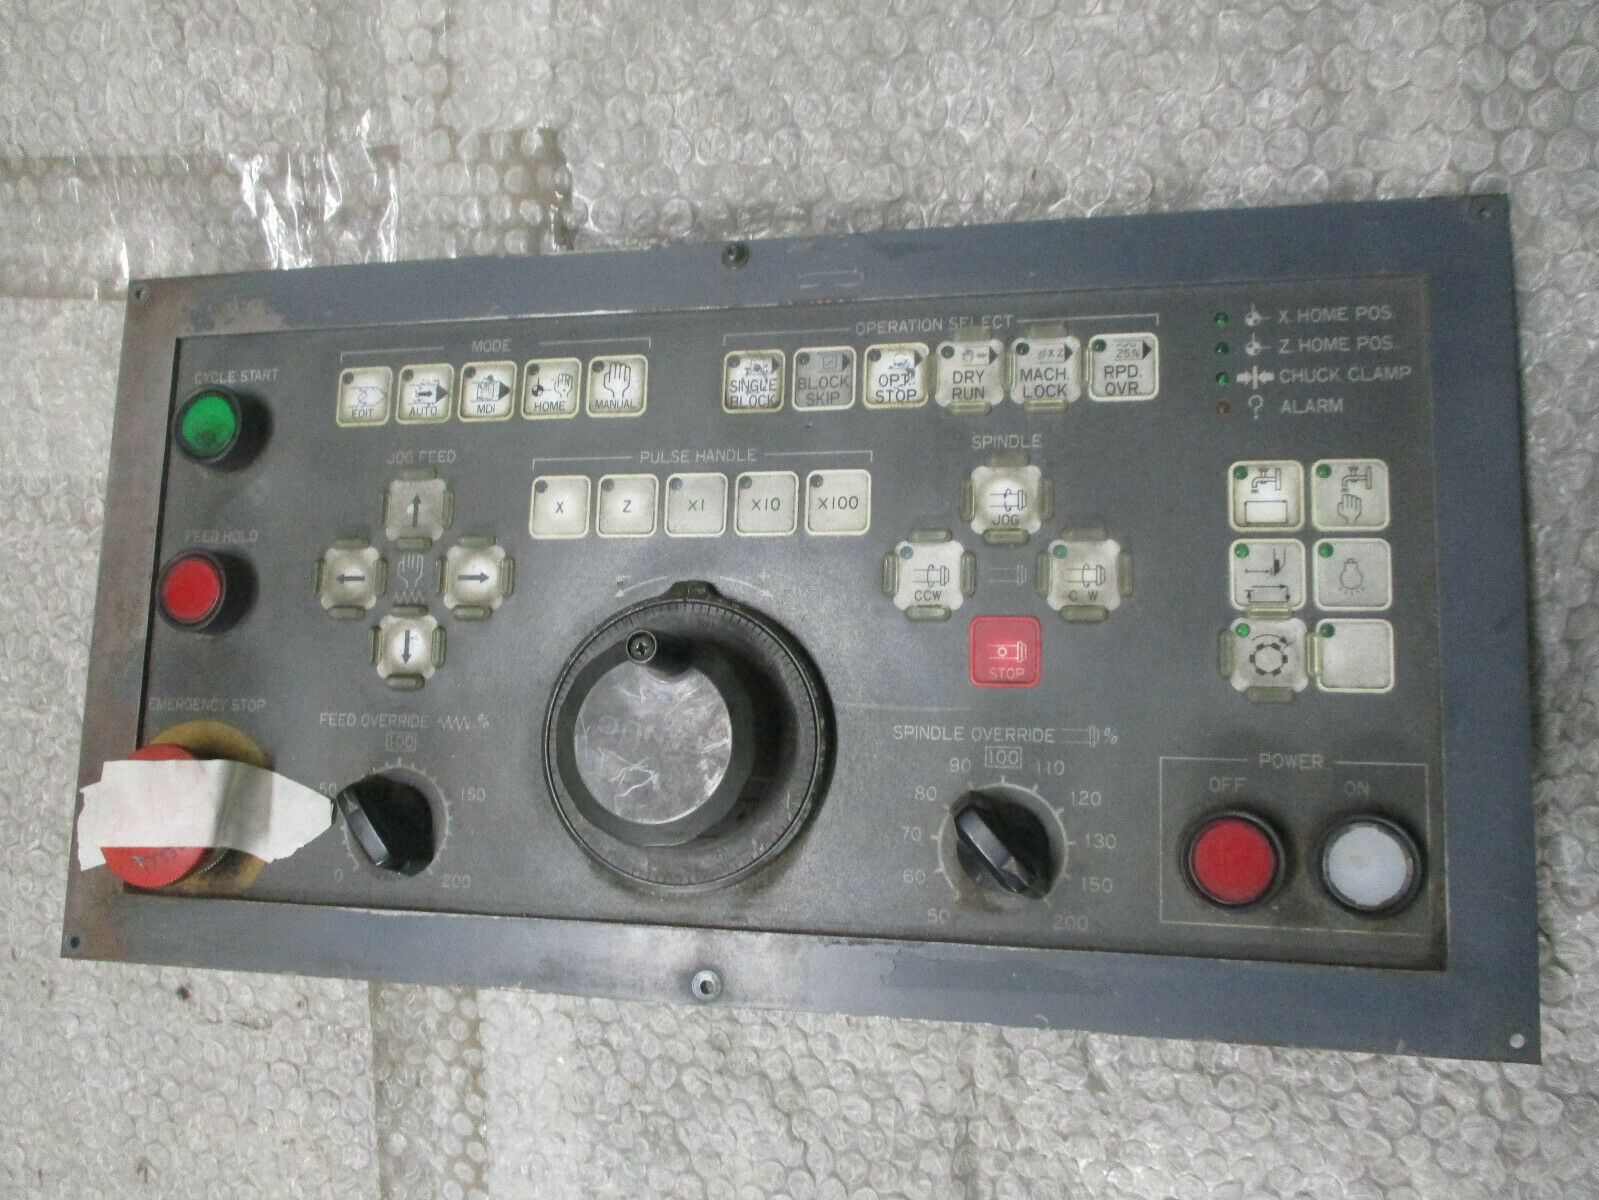 Fanuc Spindle CNC Interface Servo Control machine Panel A860-0202-T001  *TESTED*